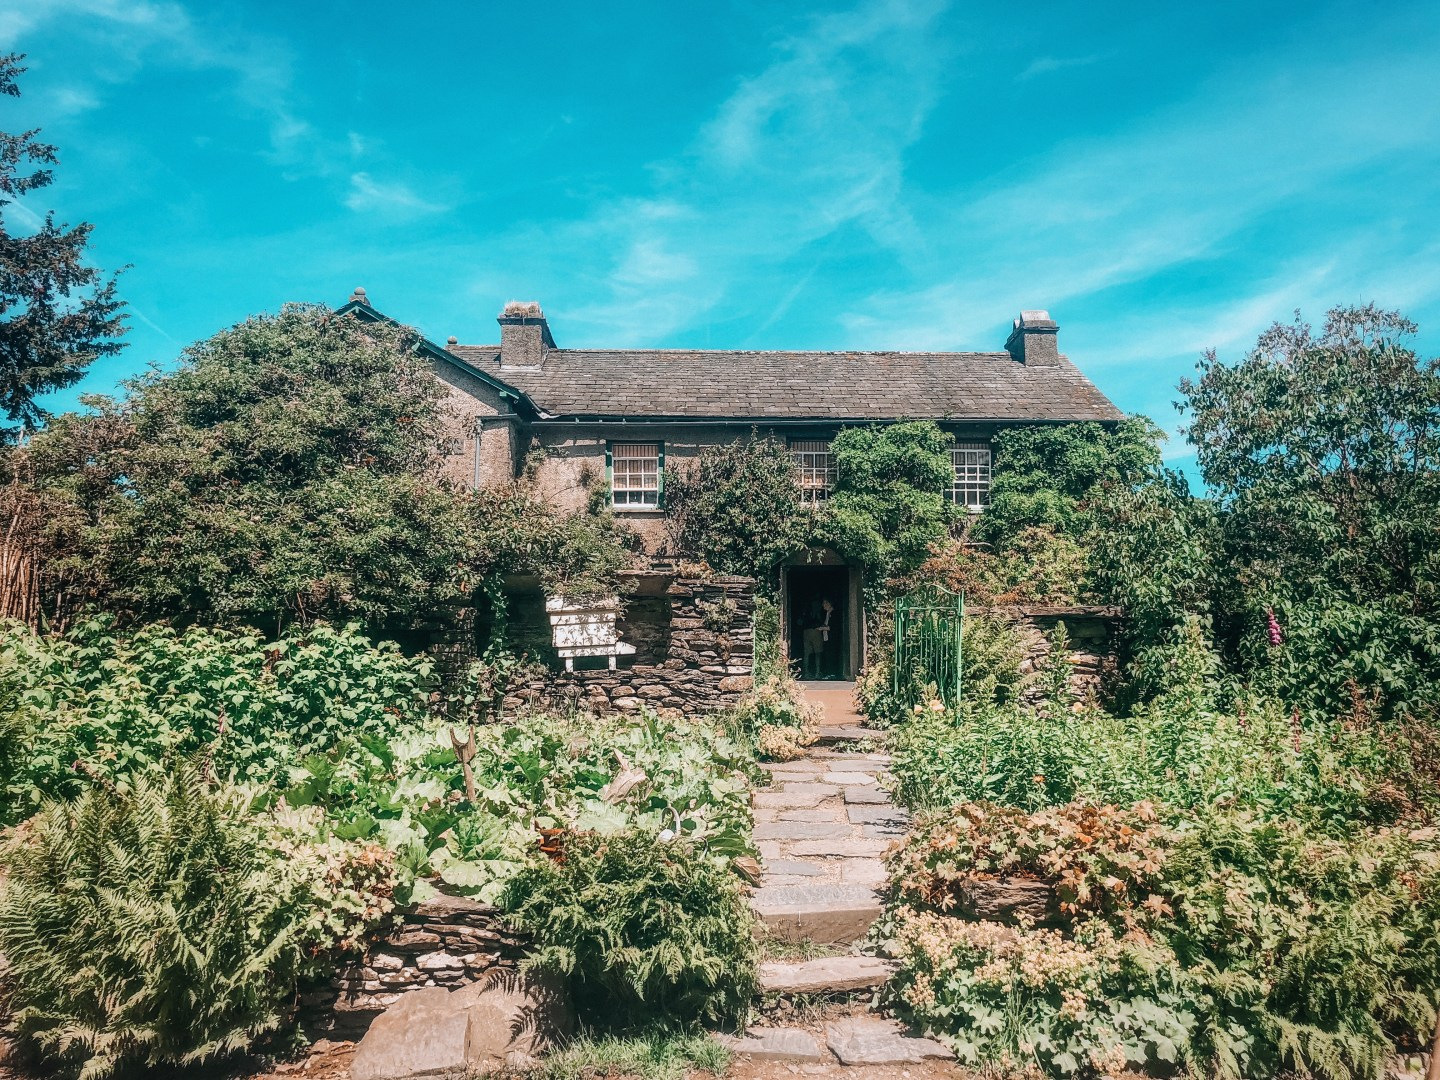 UK STAYCATION IDEAS: Hill Top, Beatrix Potter's house